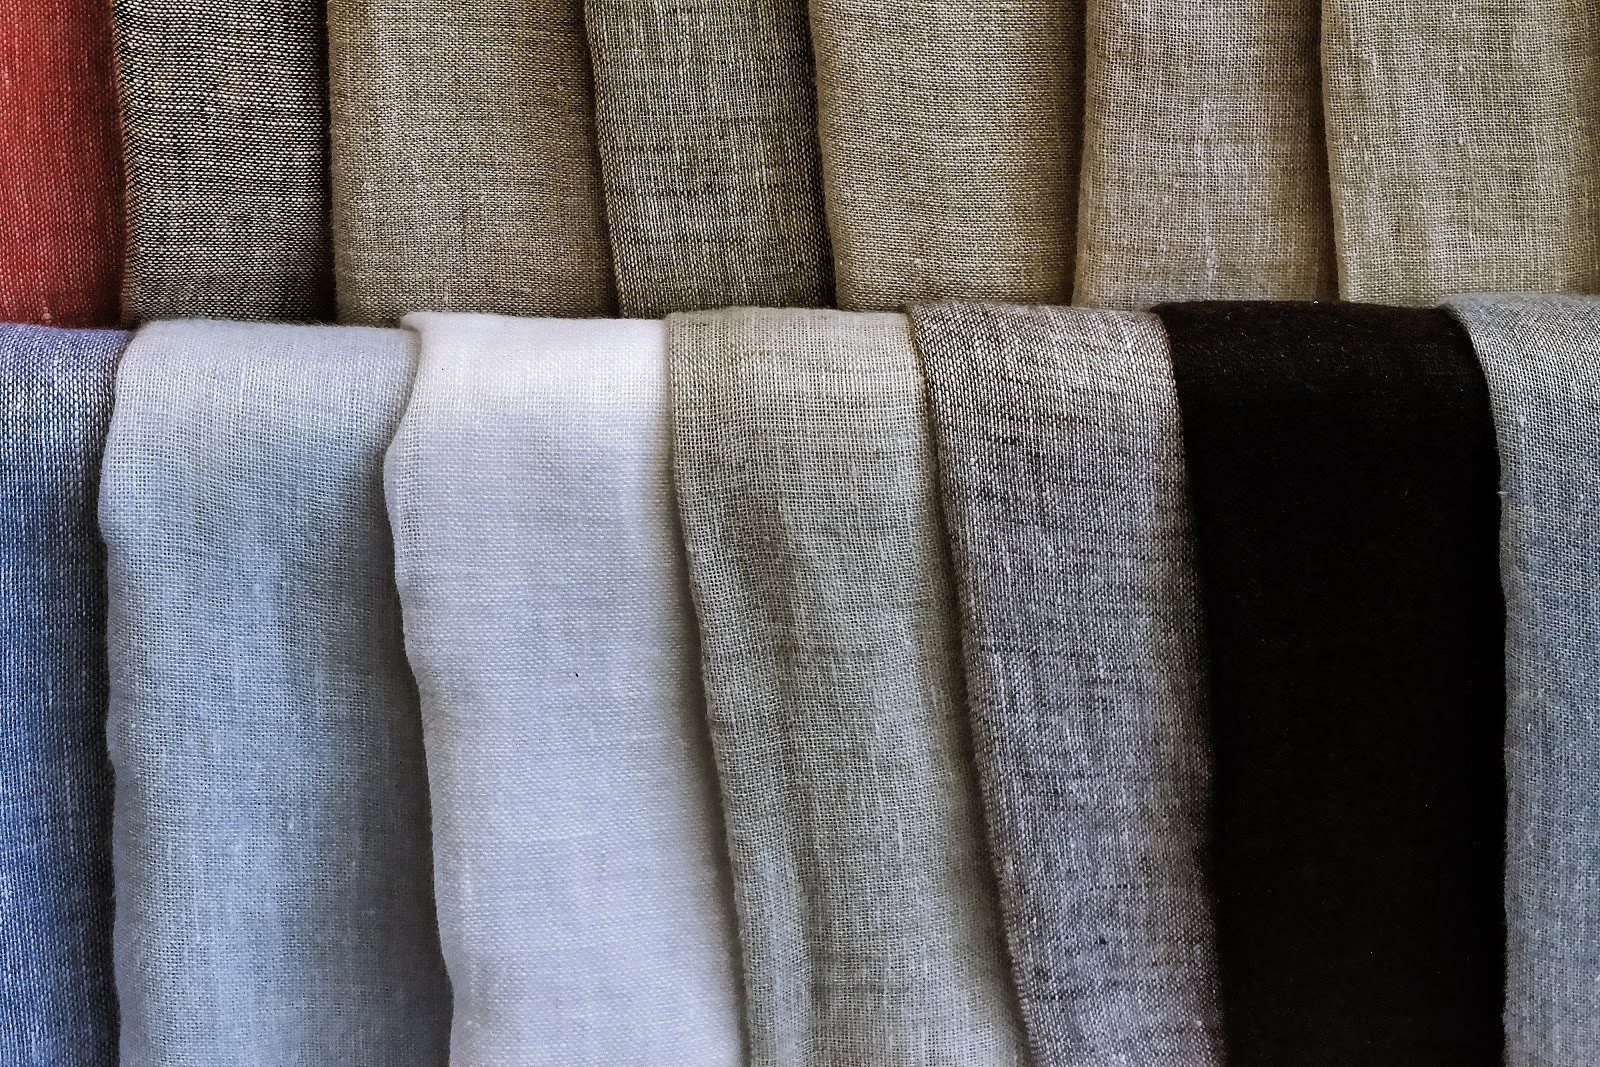 Photo of fabrics folded and hanging on top of one another. Fabrics looks like linen, in muted tones.